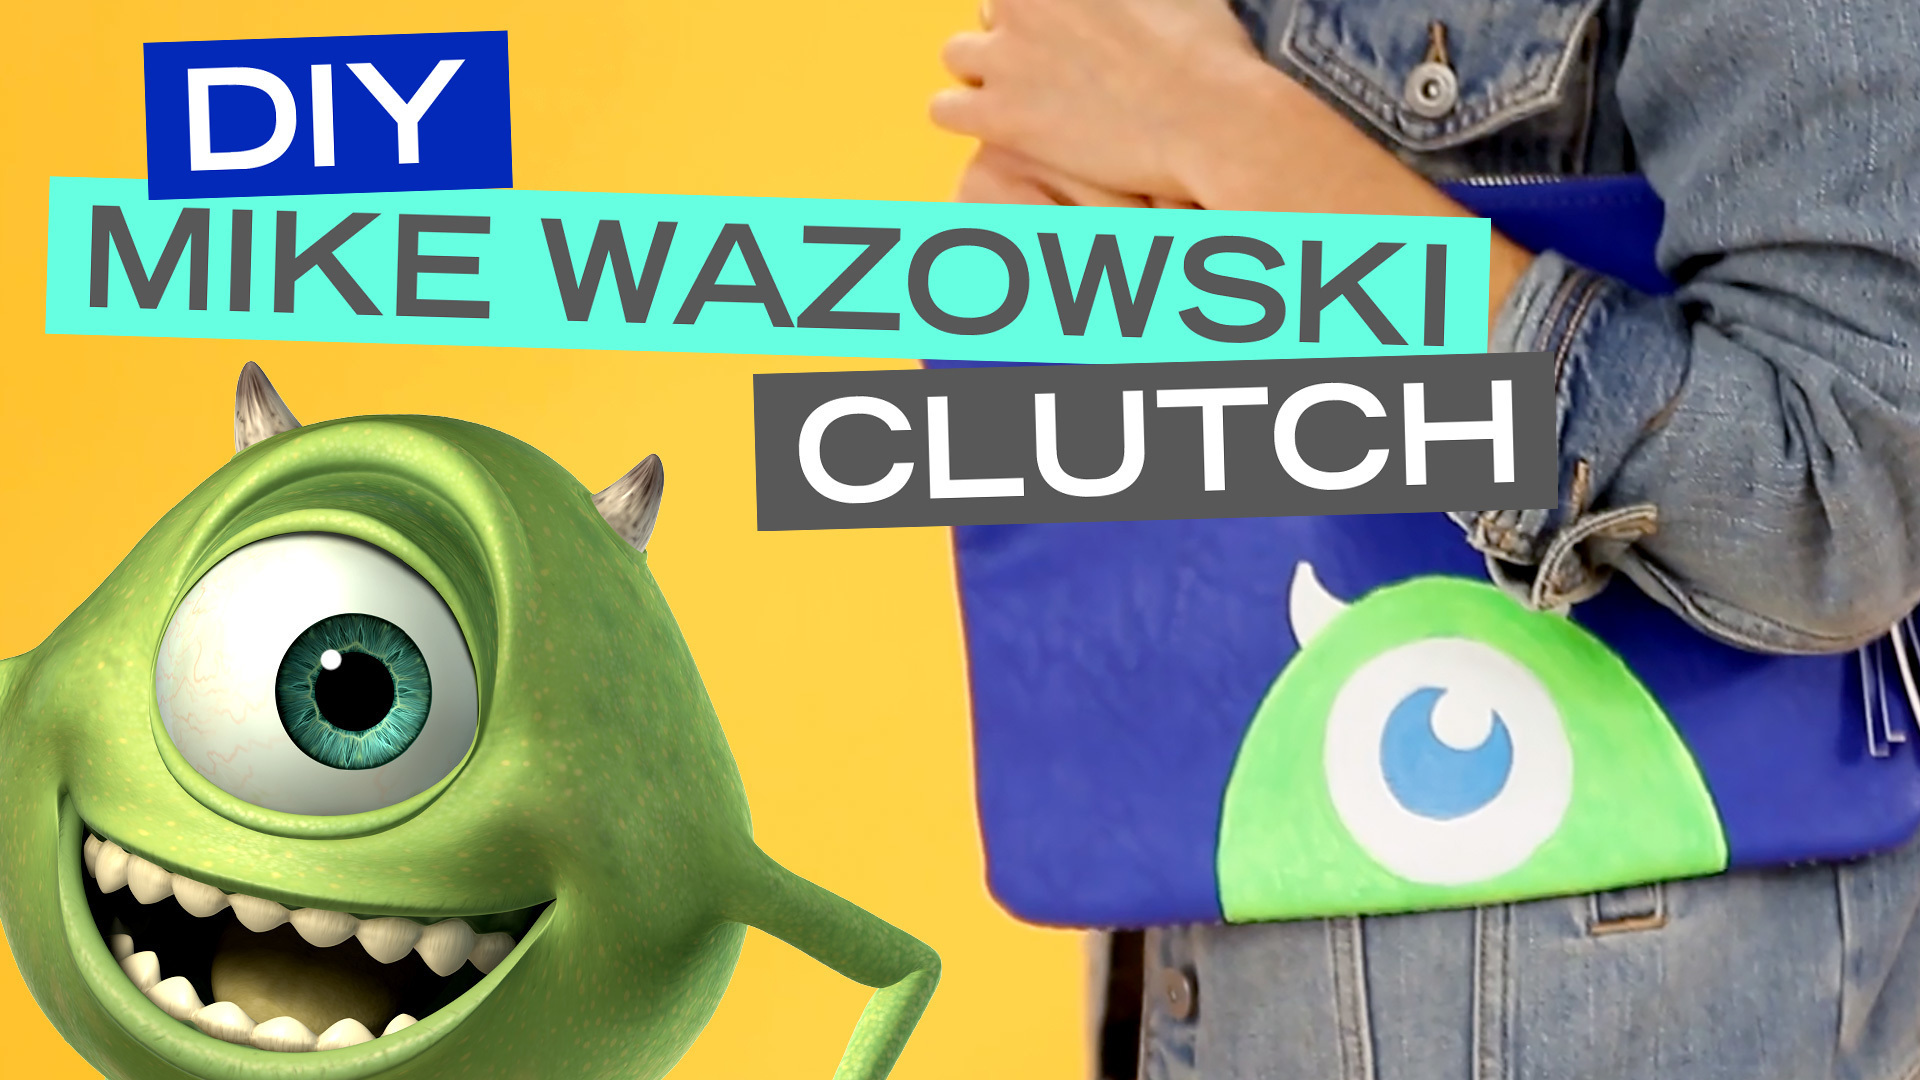 Monsters, Inc. Mike Wazowski DIY Clutch  | Disney Style